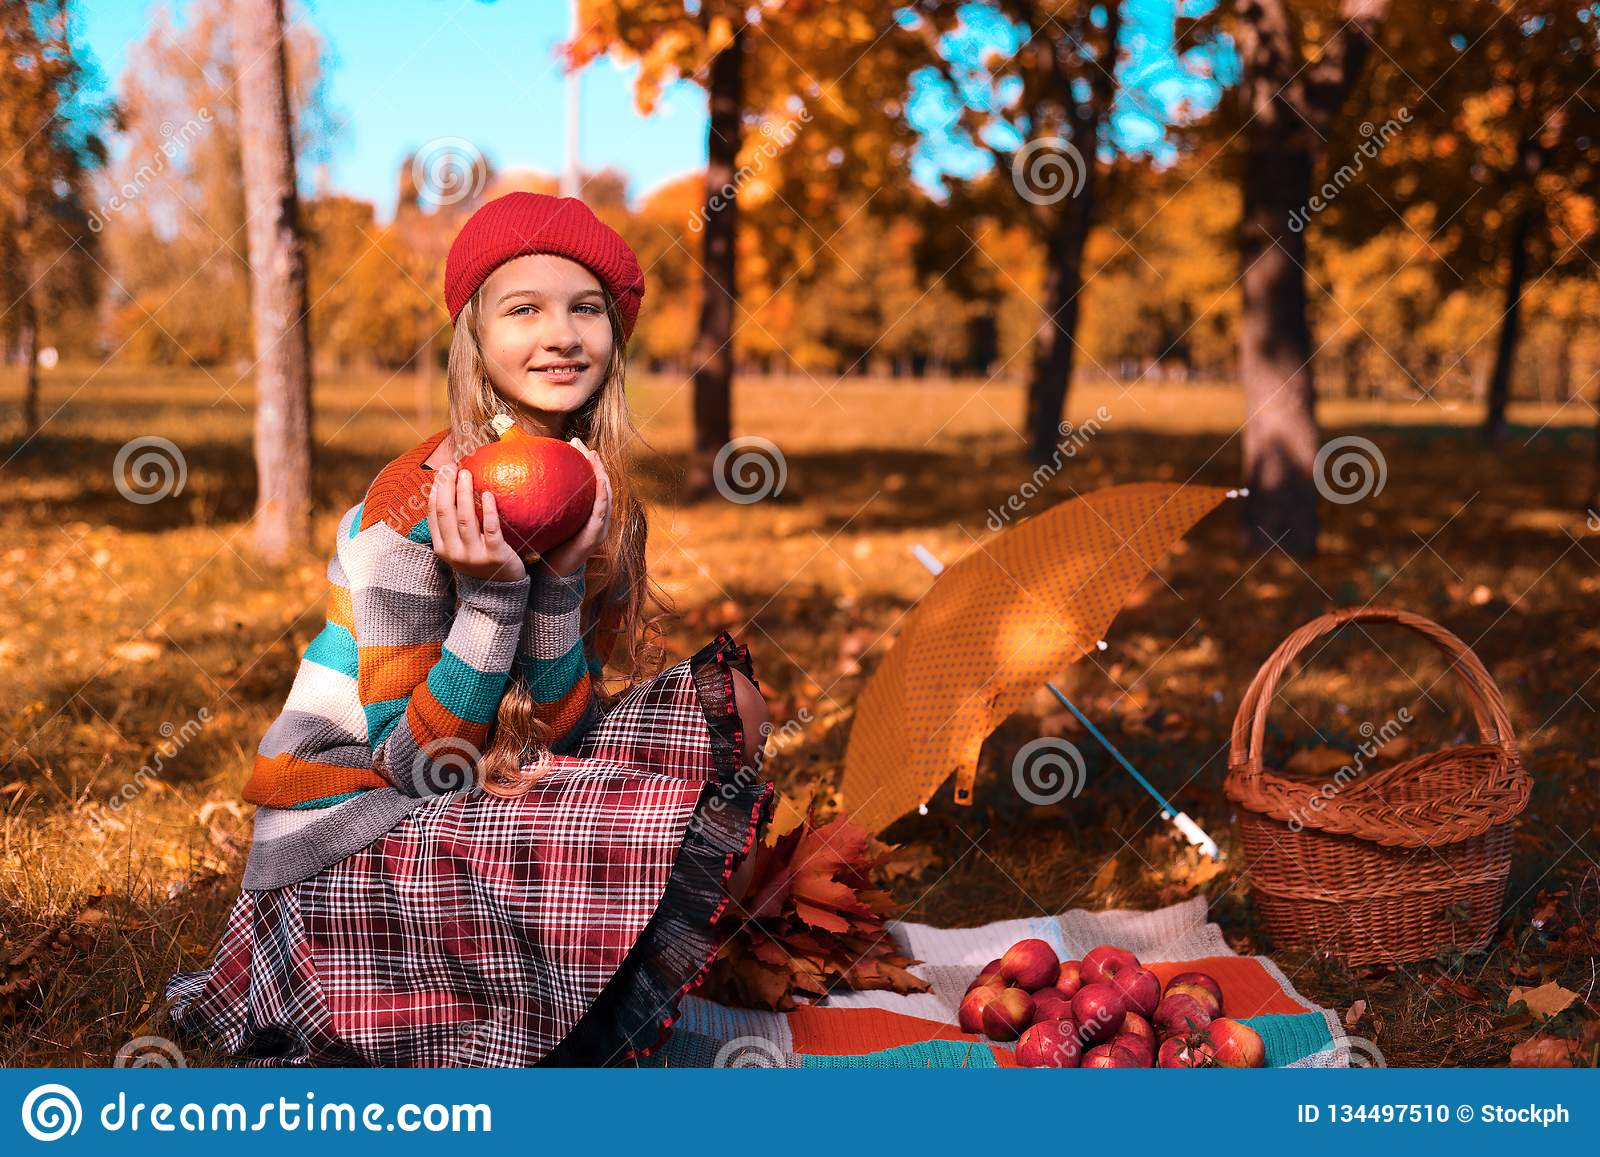 Happy teenager smiling. Autumn portrait of beautiful young girl in red hat